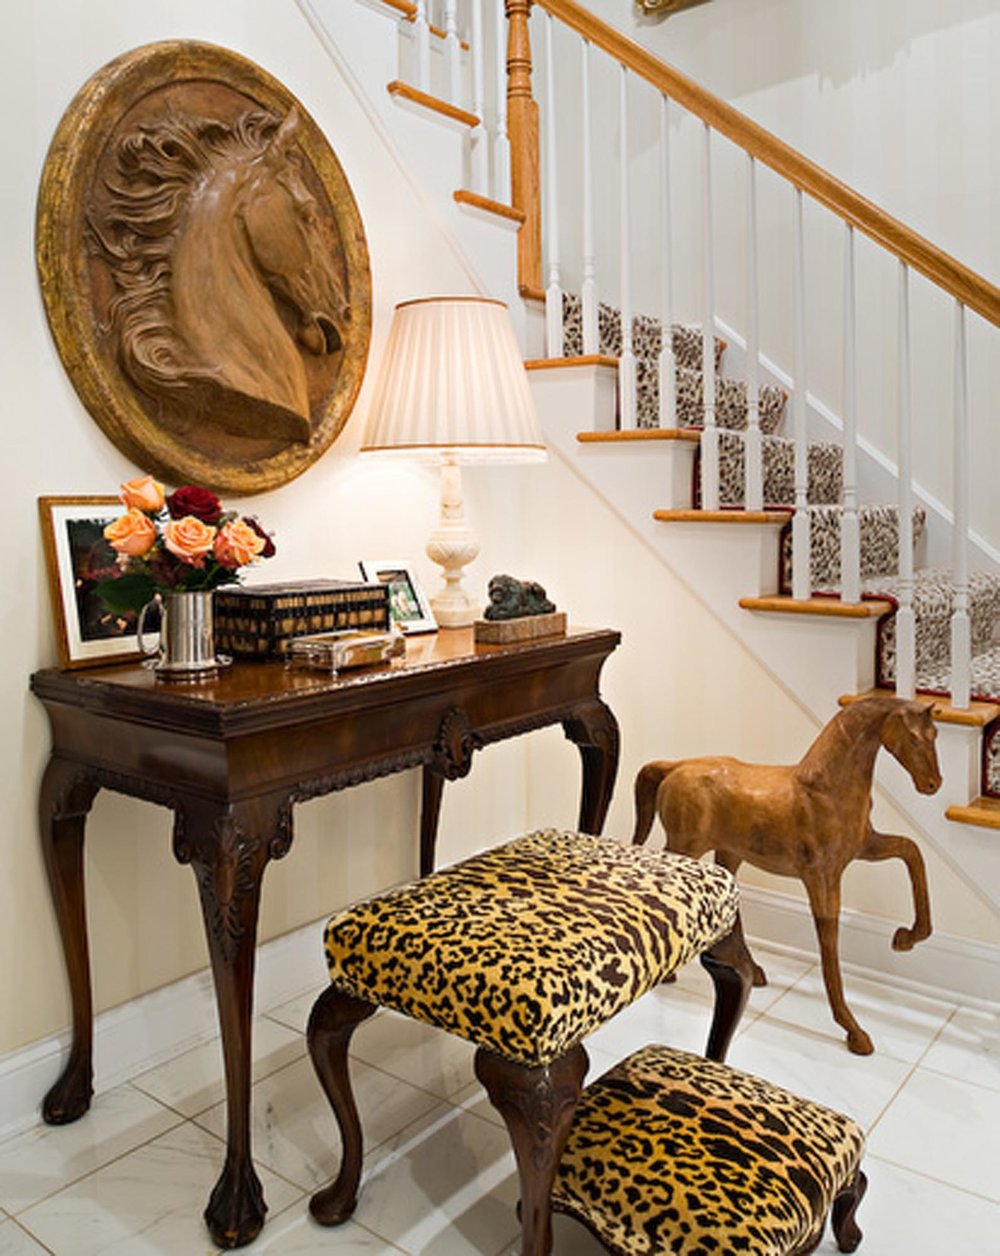 Wooden side table with horse sculpture and staircase